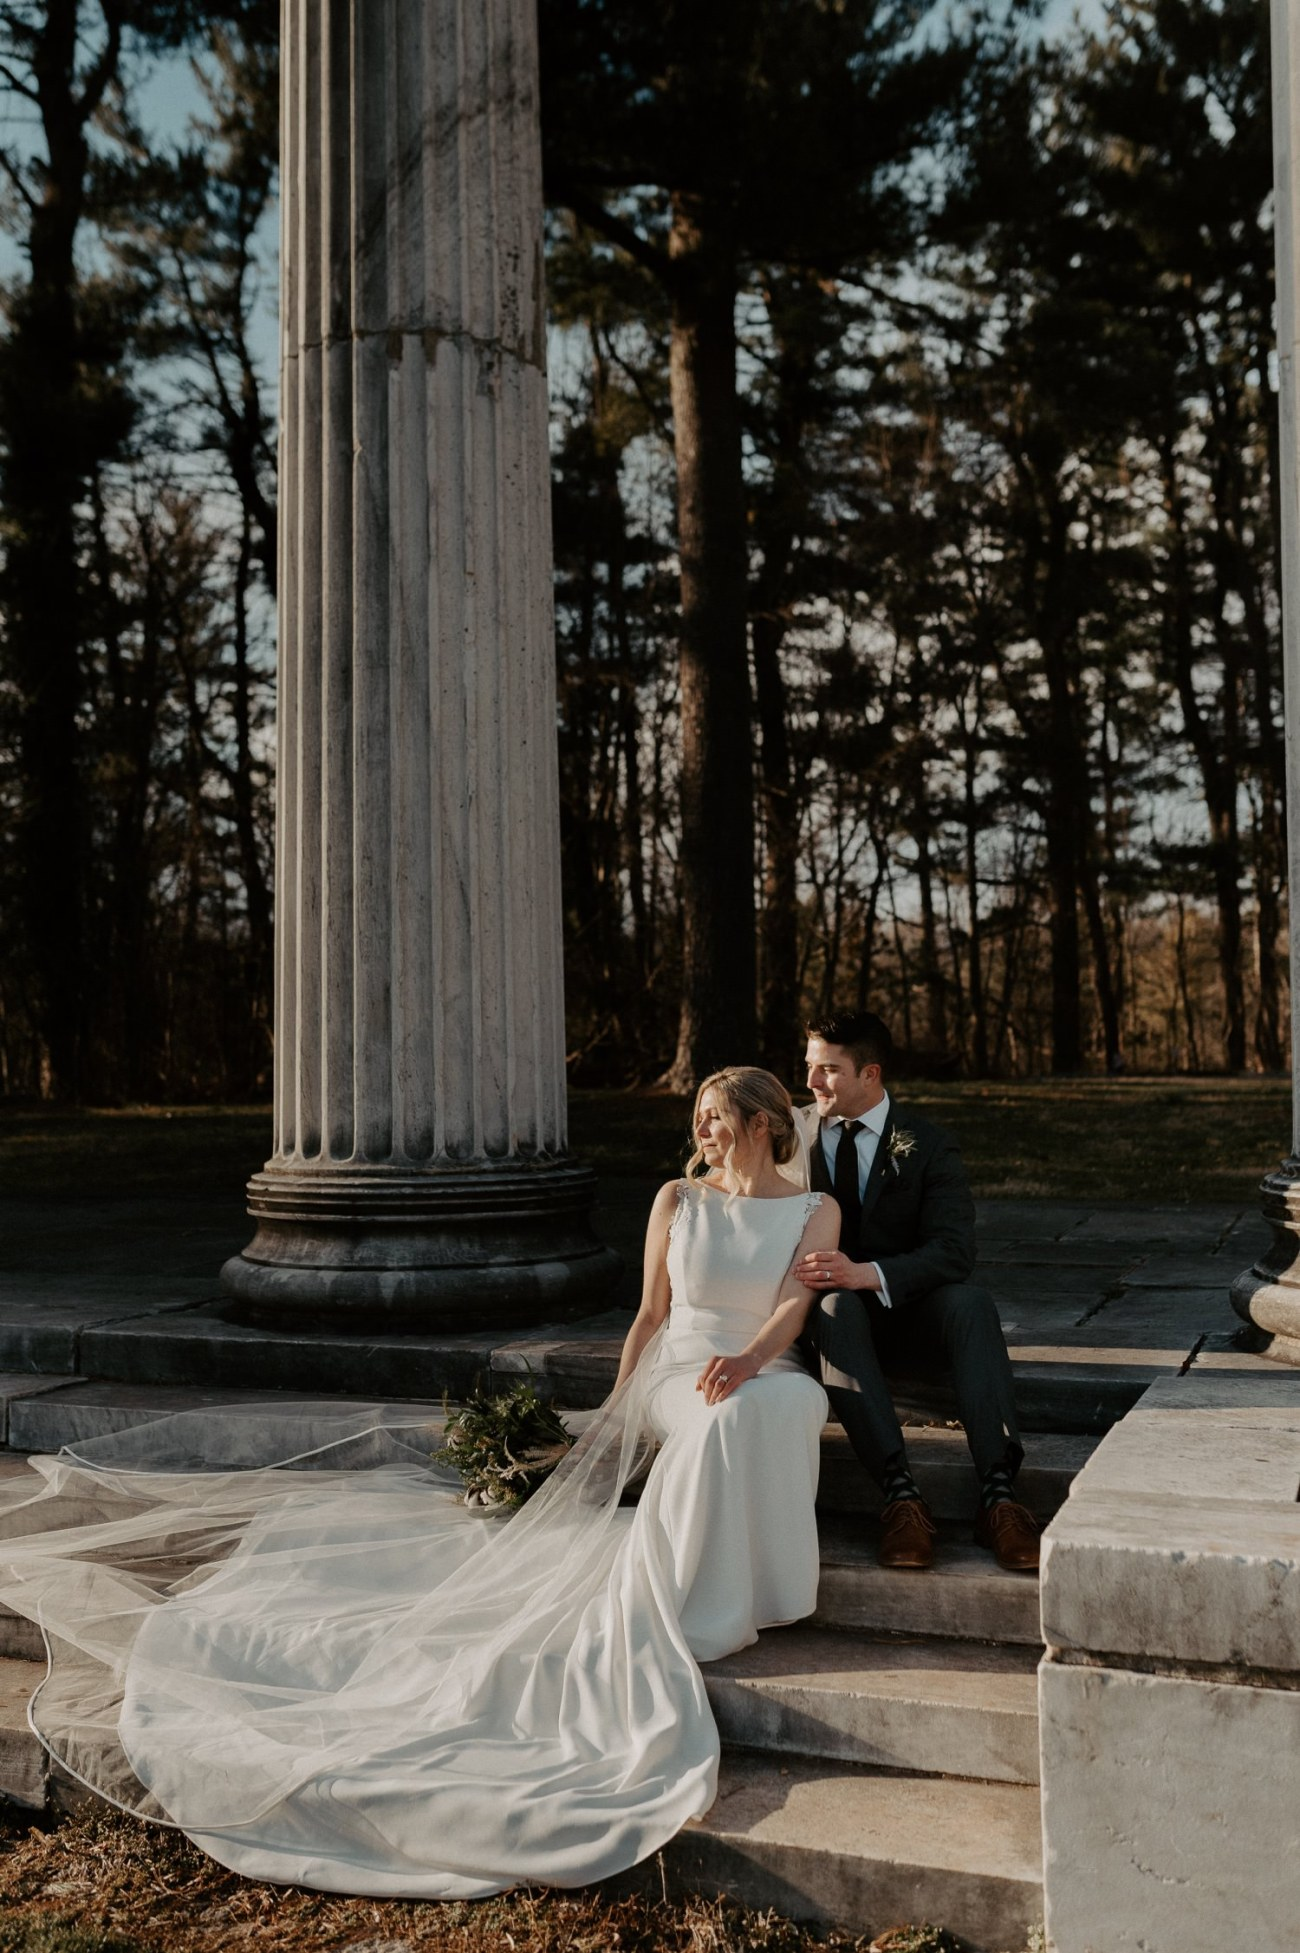 Princeton Battlefield Wedding Princeton University Elopement New Jersey Wedding Photographer Anais Possamai Photography 28